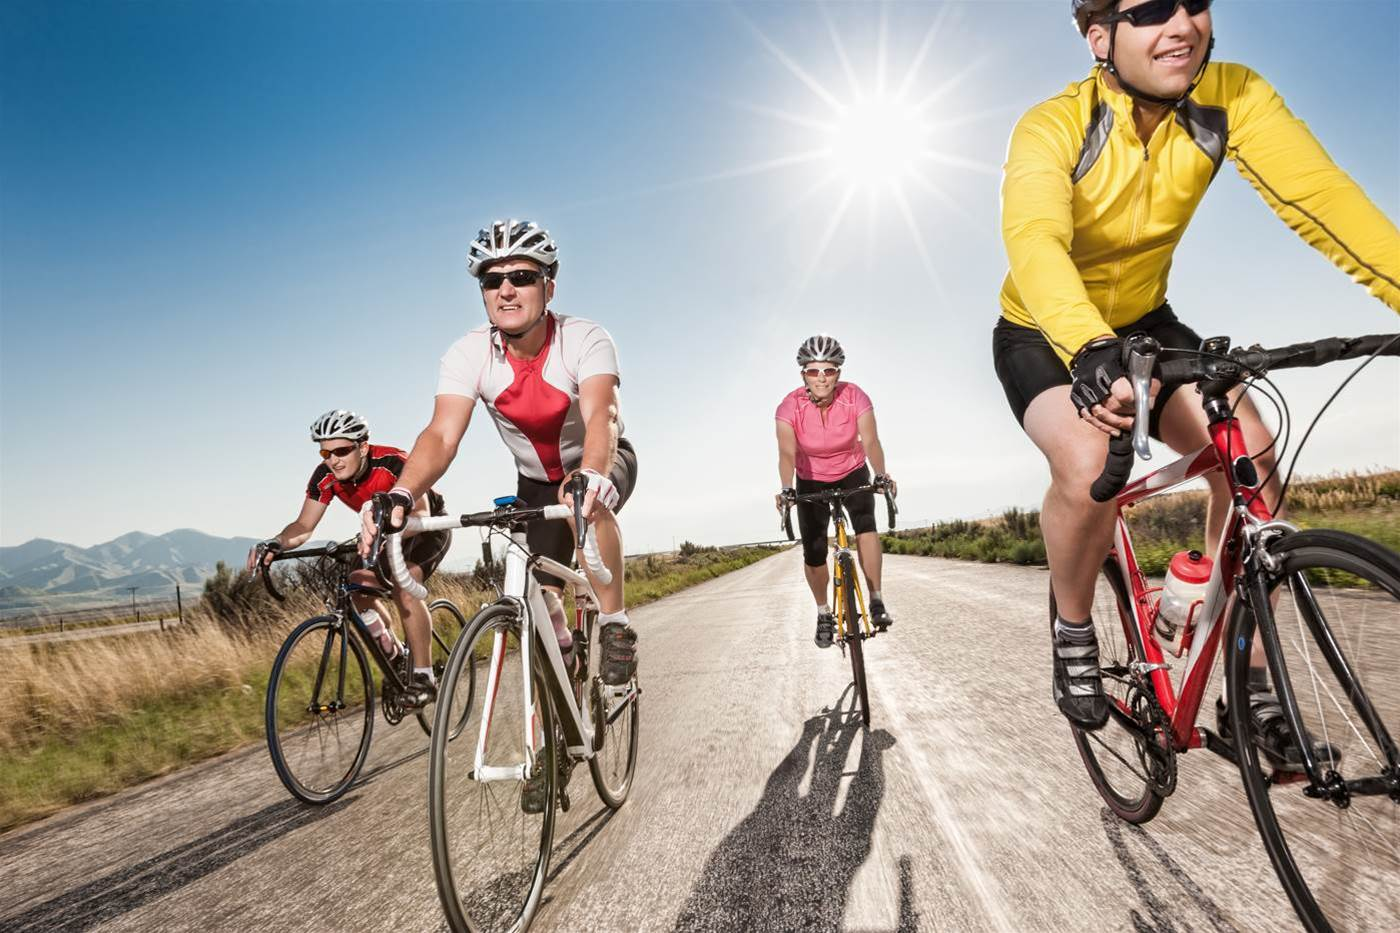 6 ways cyclists can protect themselves from the sun